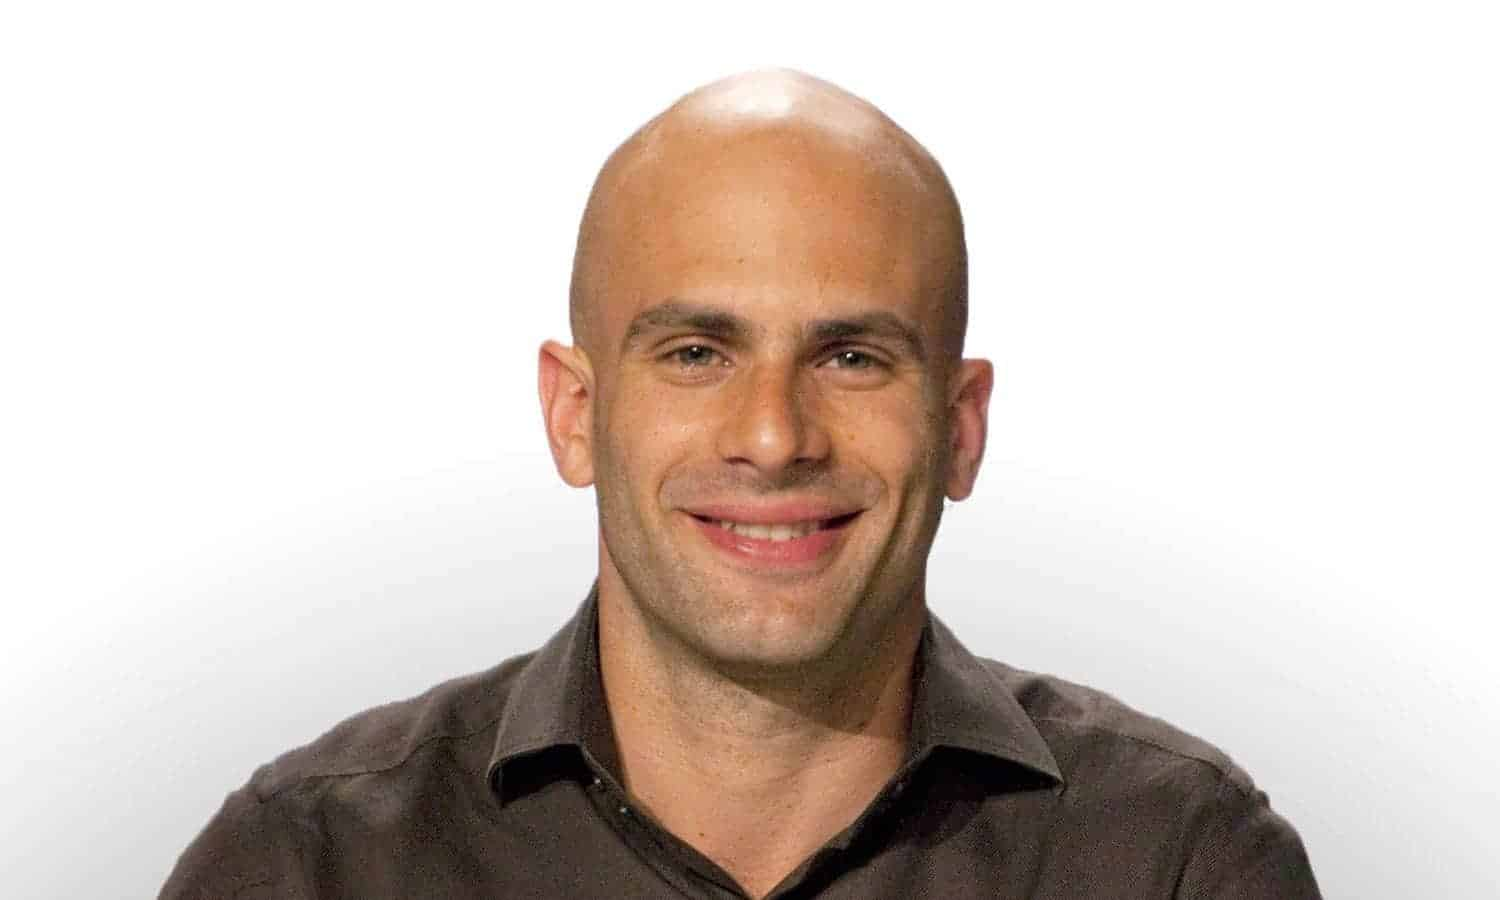 On Food Talk, Sam Kass talks about the future of agriculture, with innovations led by businesses, entrepreneurs, and chefs.